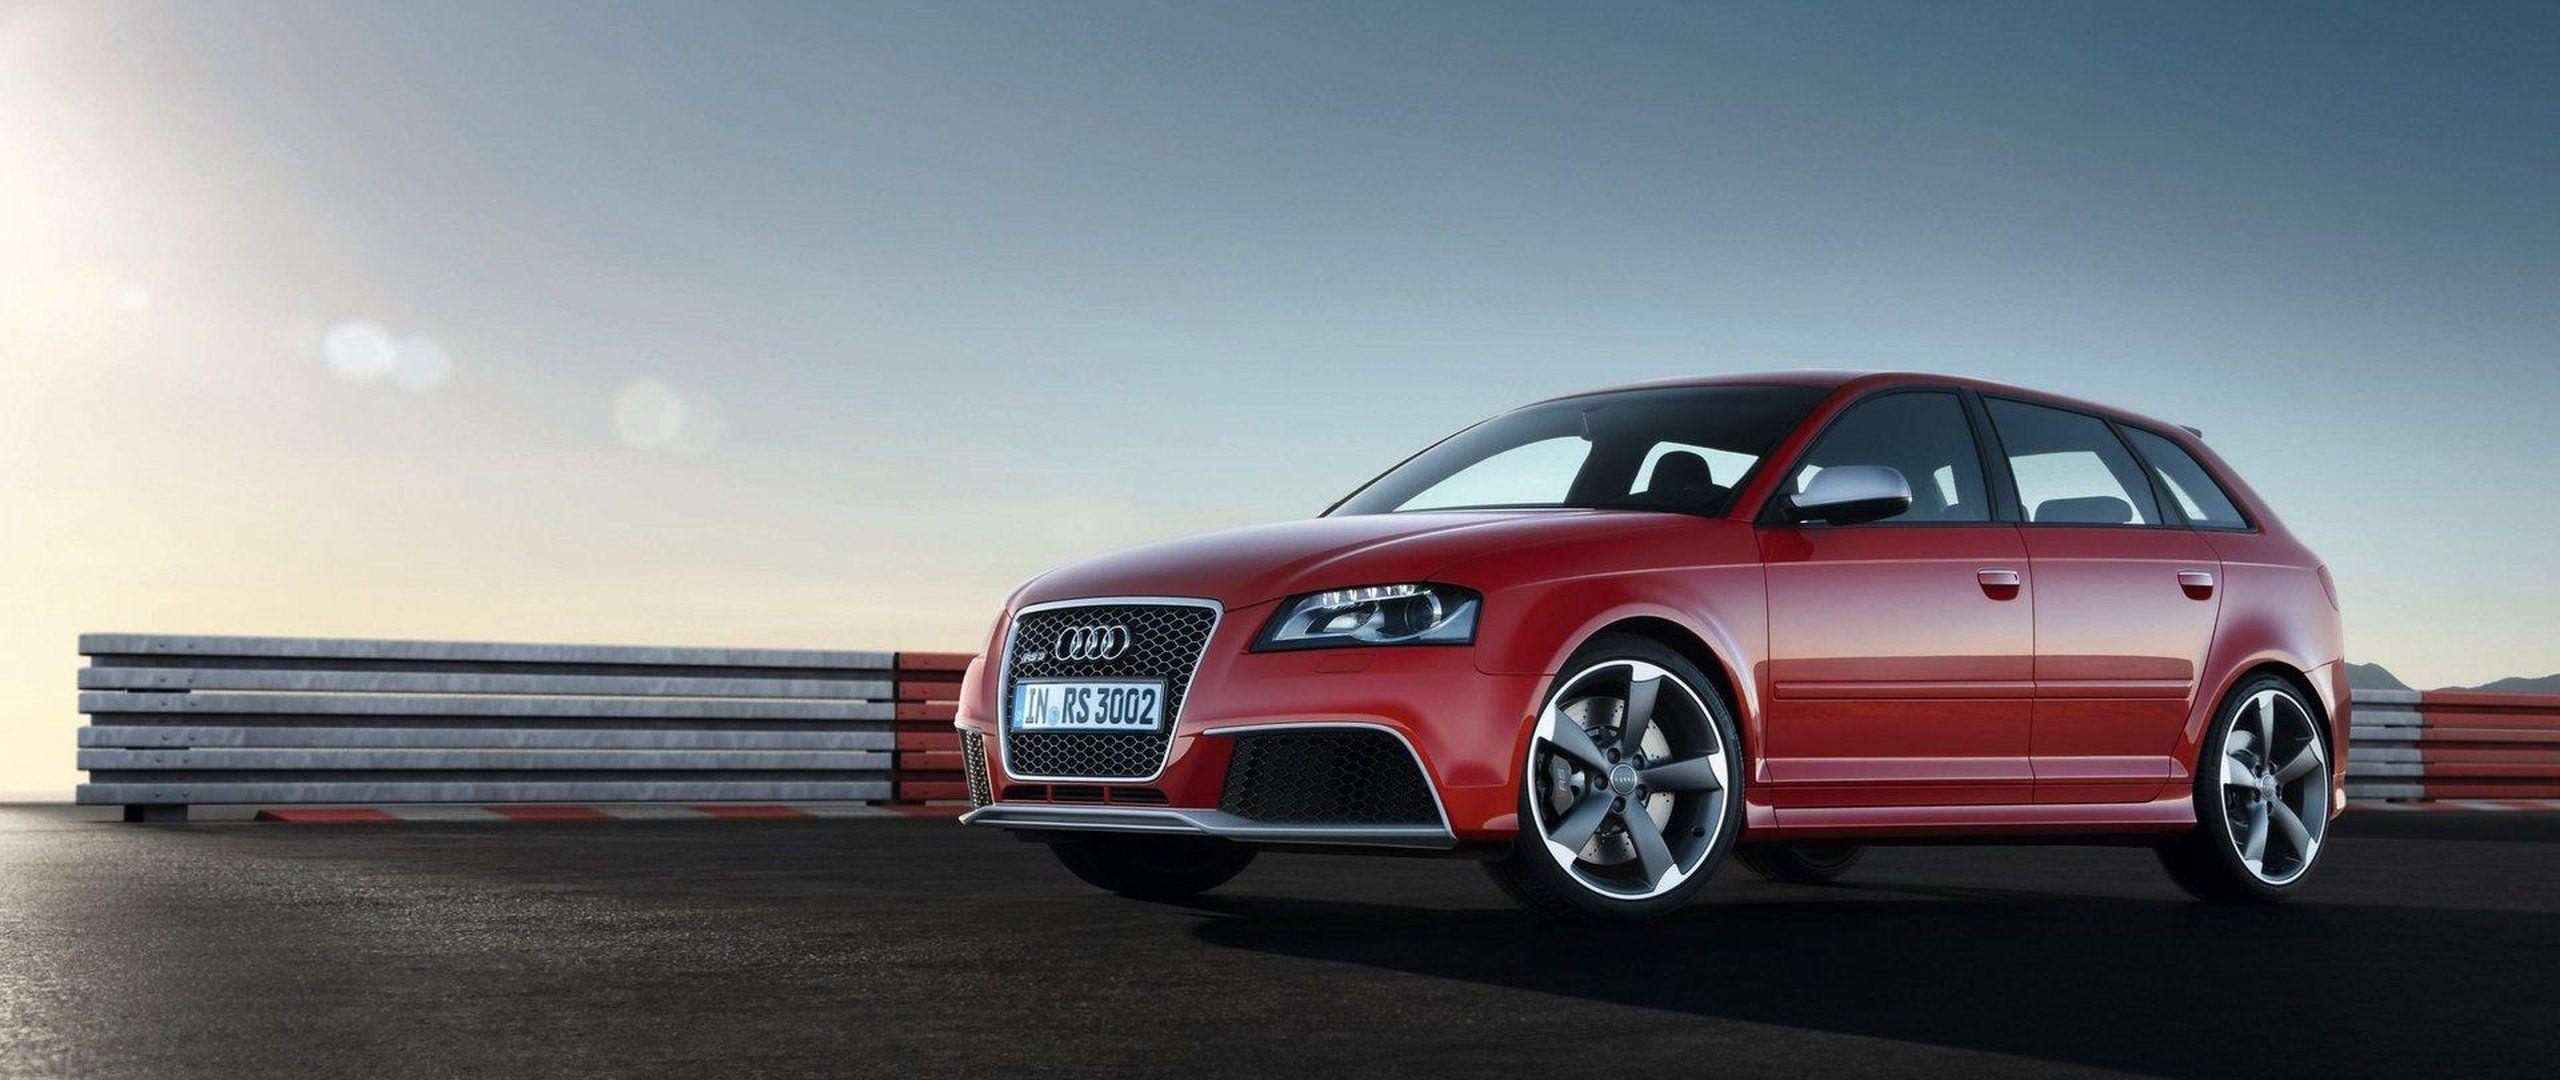 Wheel 2010 Audi RS3 Sportback - 21:9 TV Wallpaper (2560x1080)